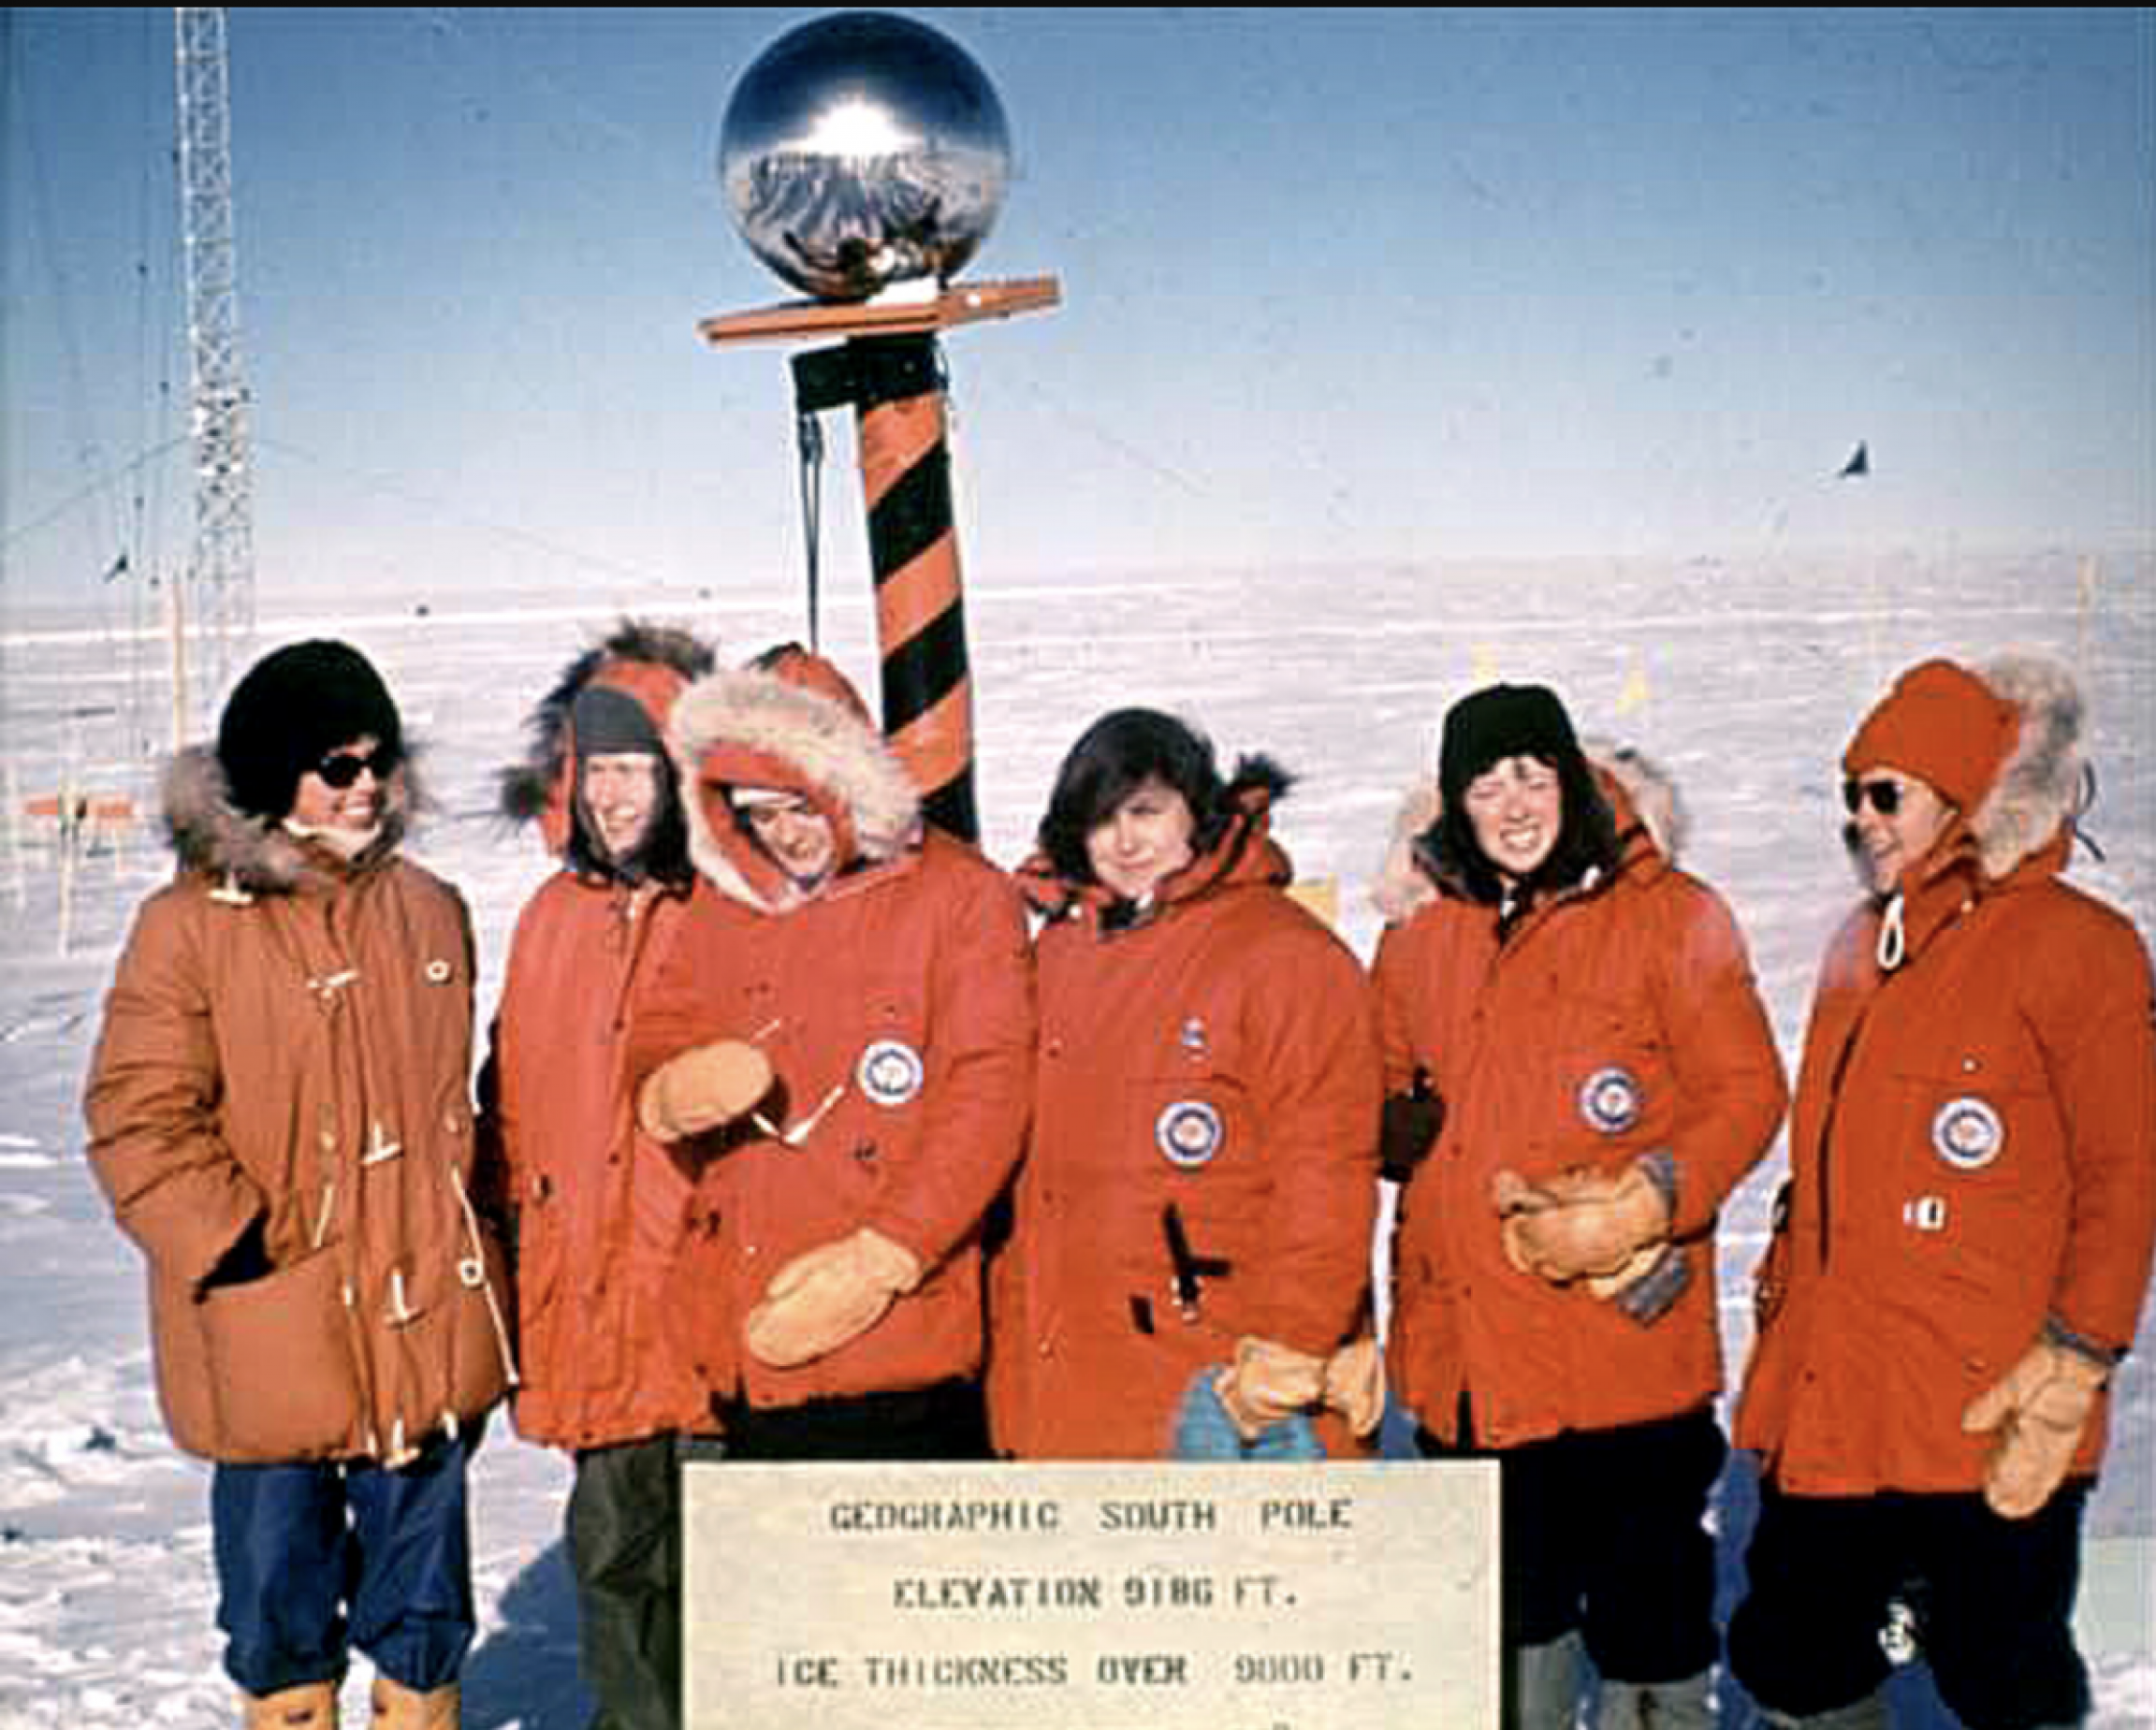 Five women with red parkas pose for a photo at the South Pole.